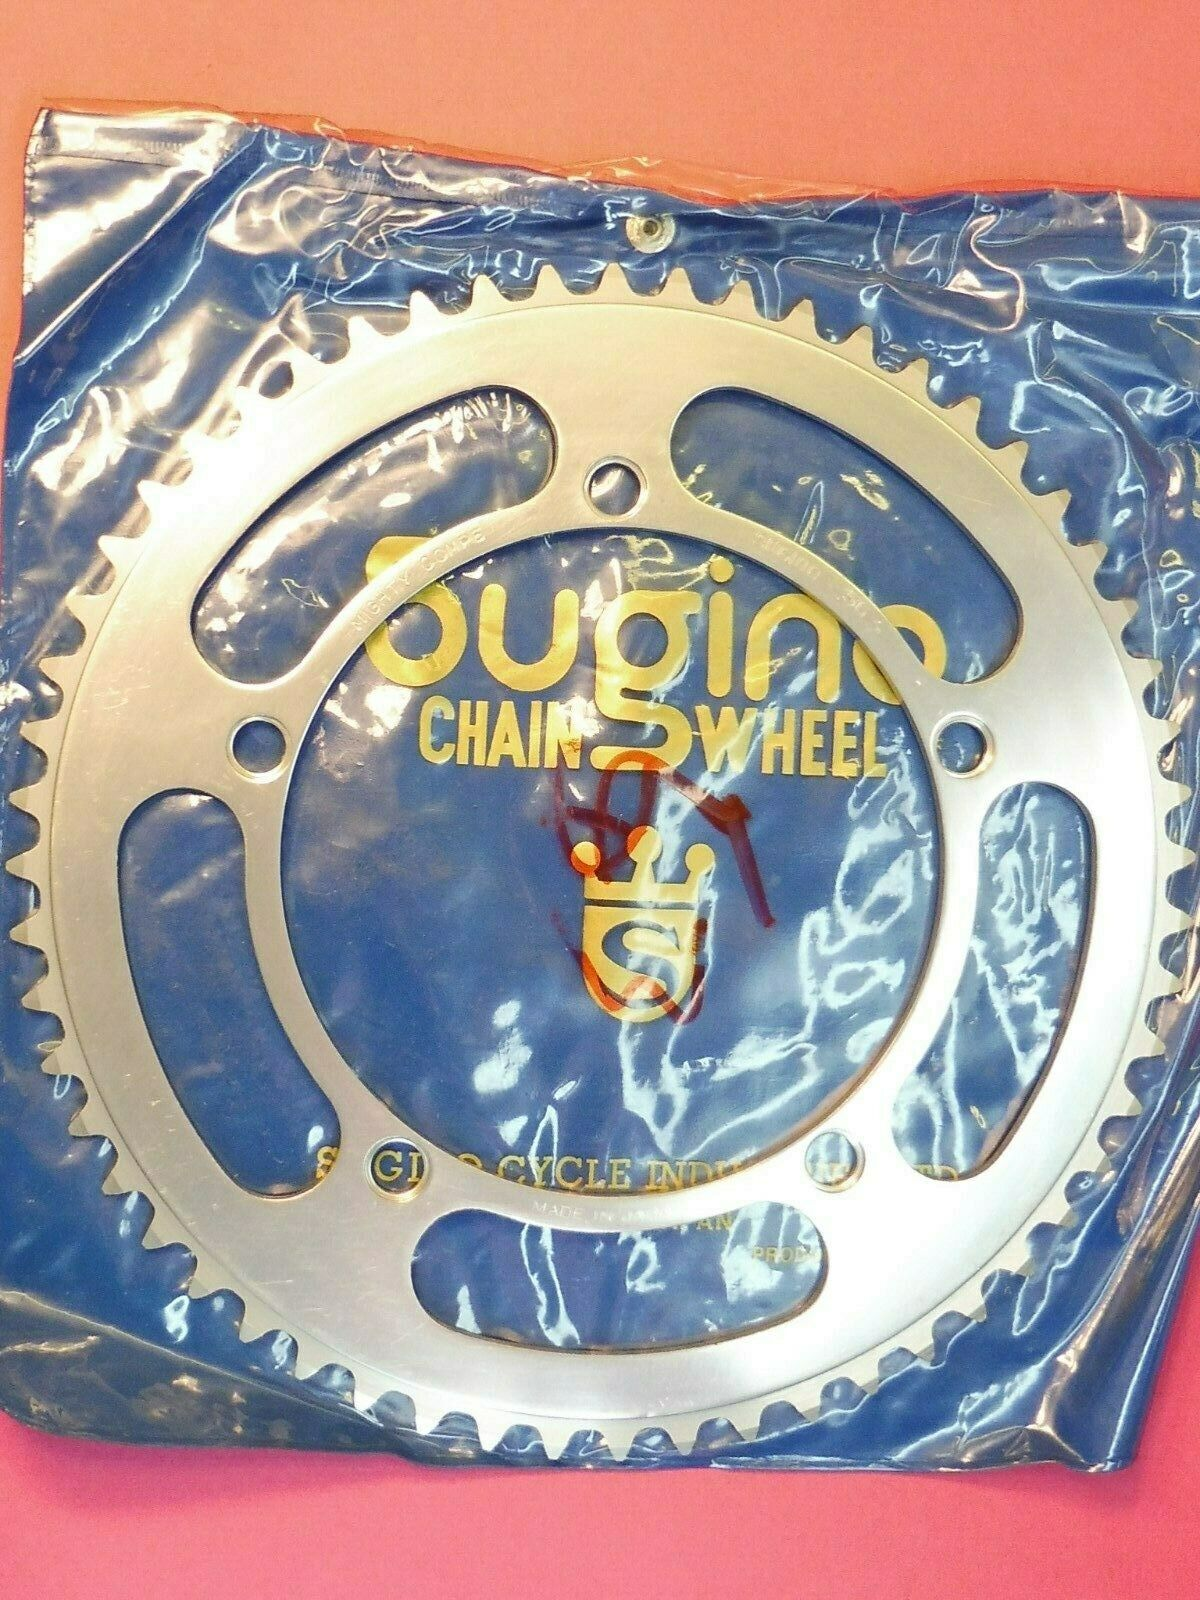 Sugino Mighty Comp.  144 PCD  56 t    chainring   NOS L'eroica  save on clearance